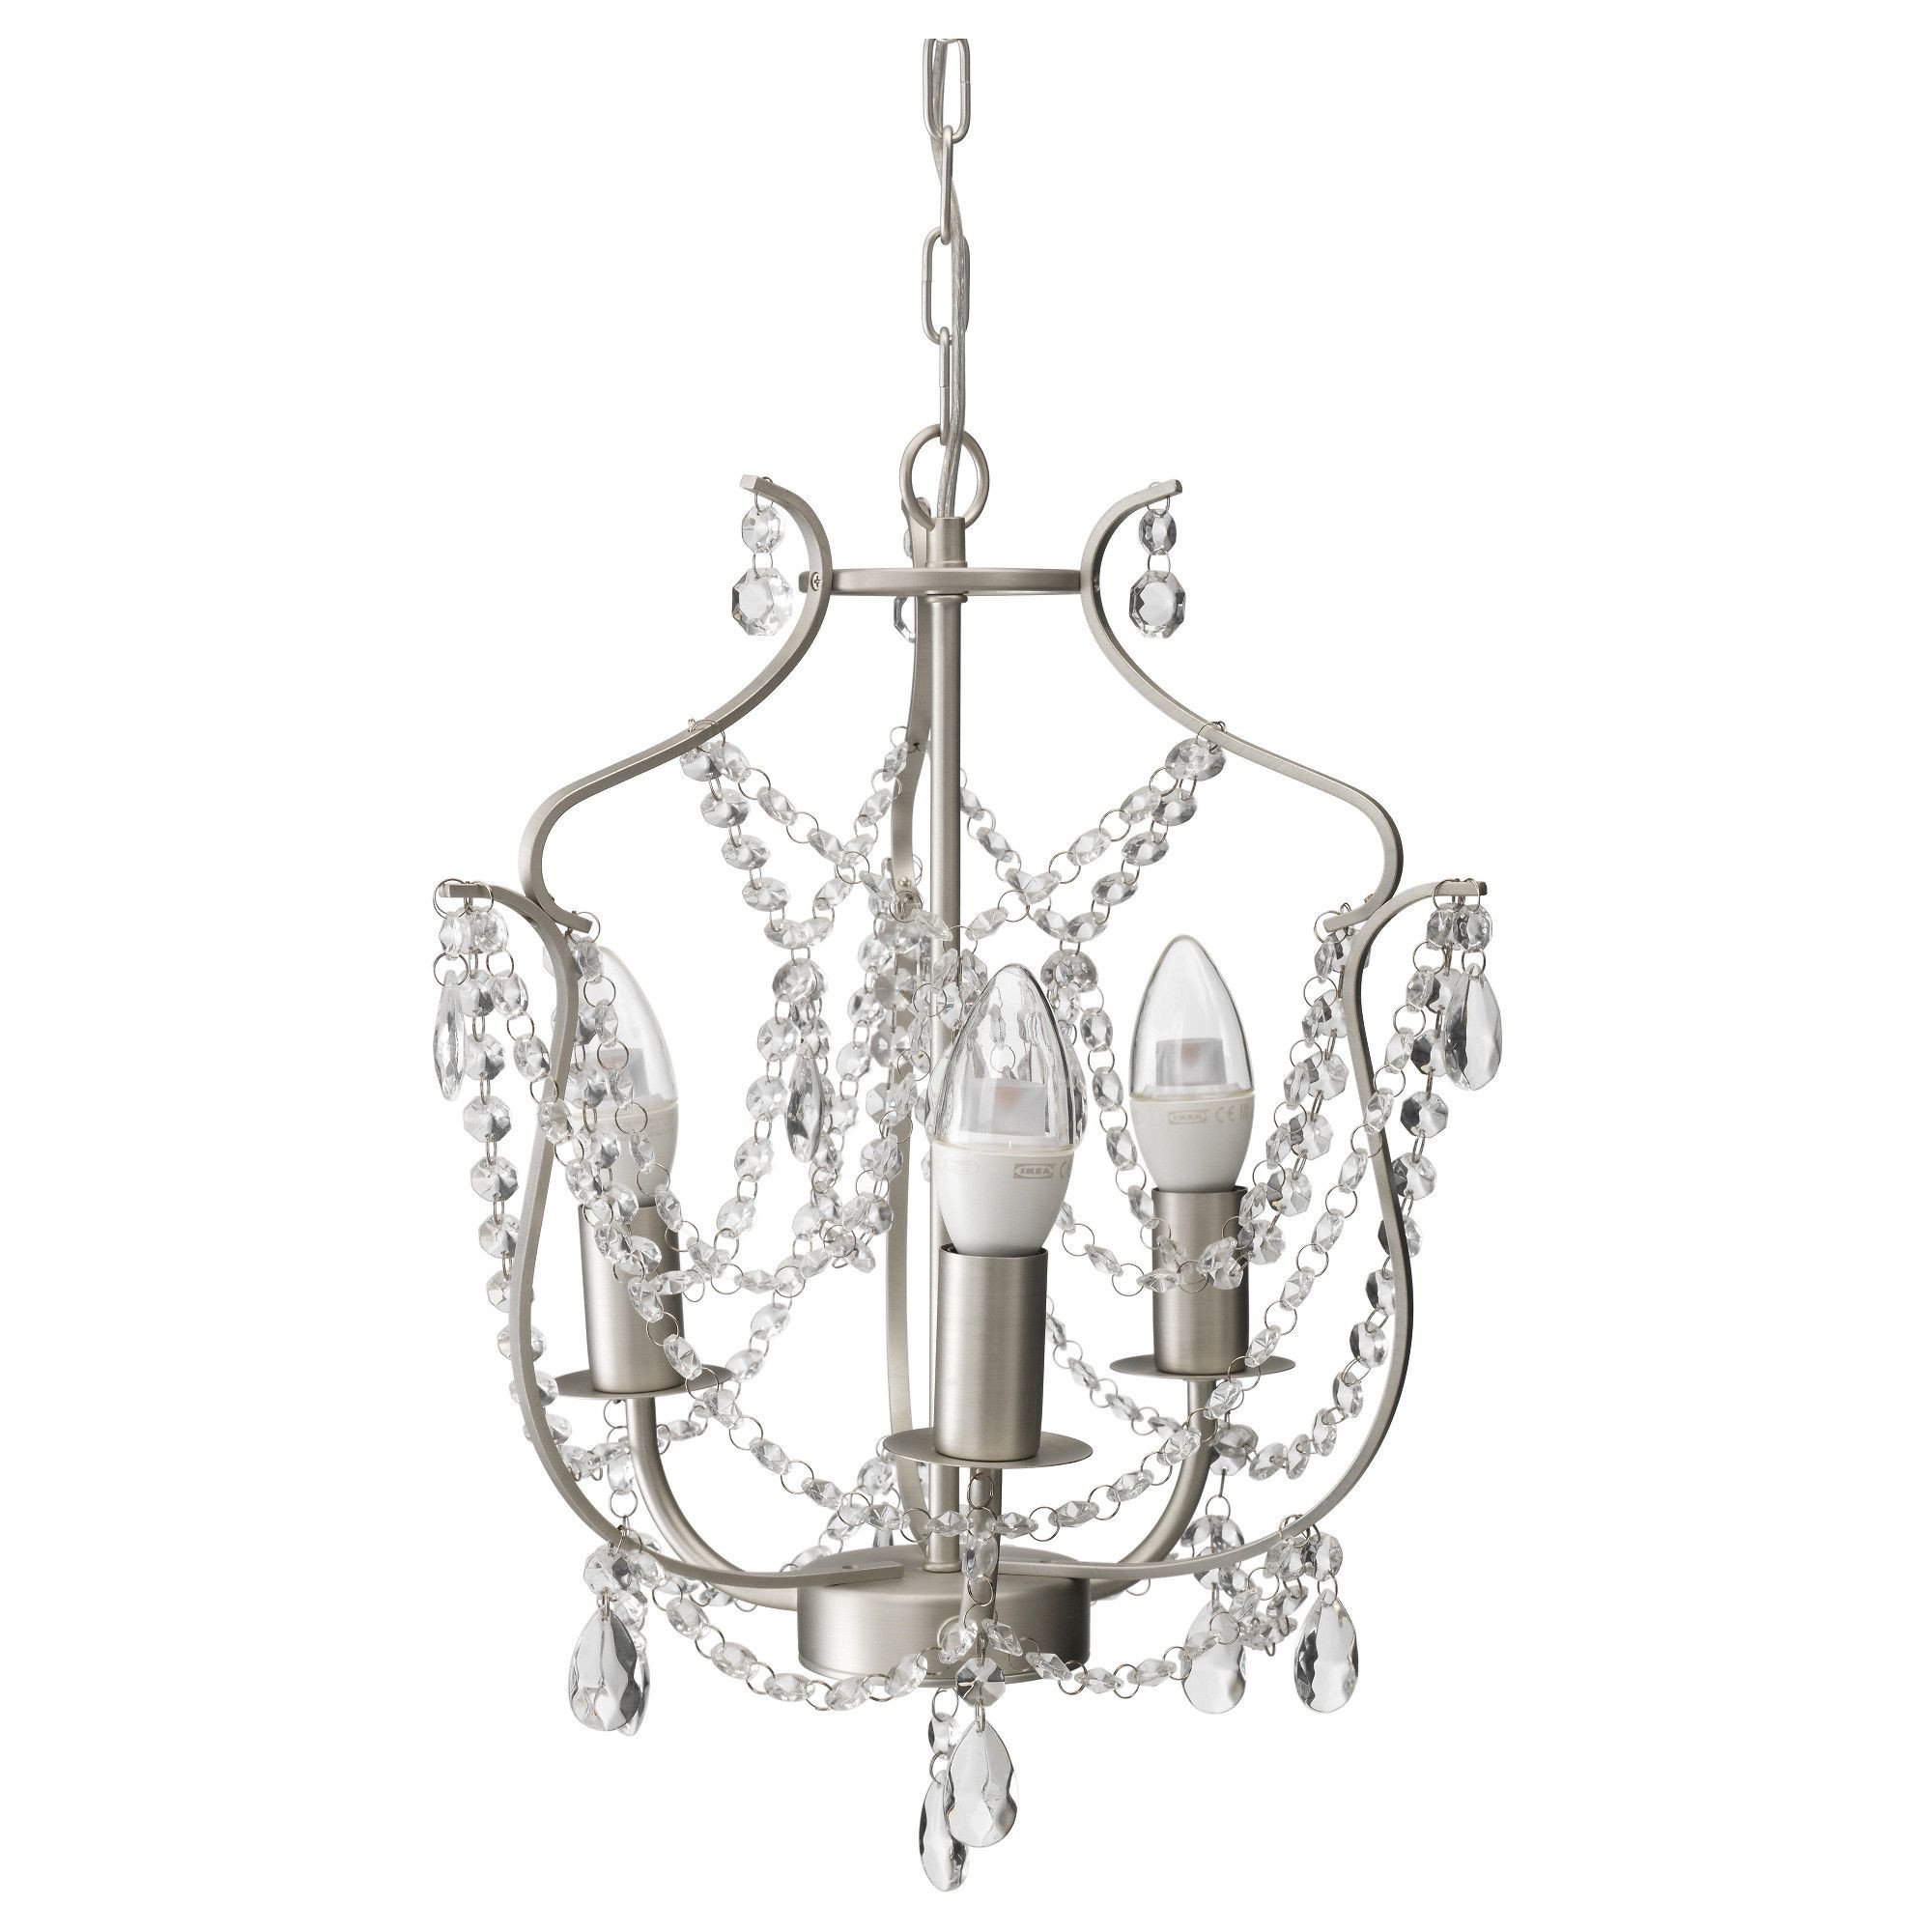 Light Fixtures for Girl Bedroom Inspirational Kristaller Chandelier 3 Armed Silver Color Glass